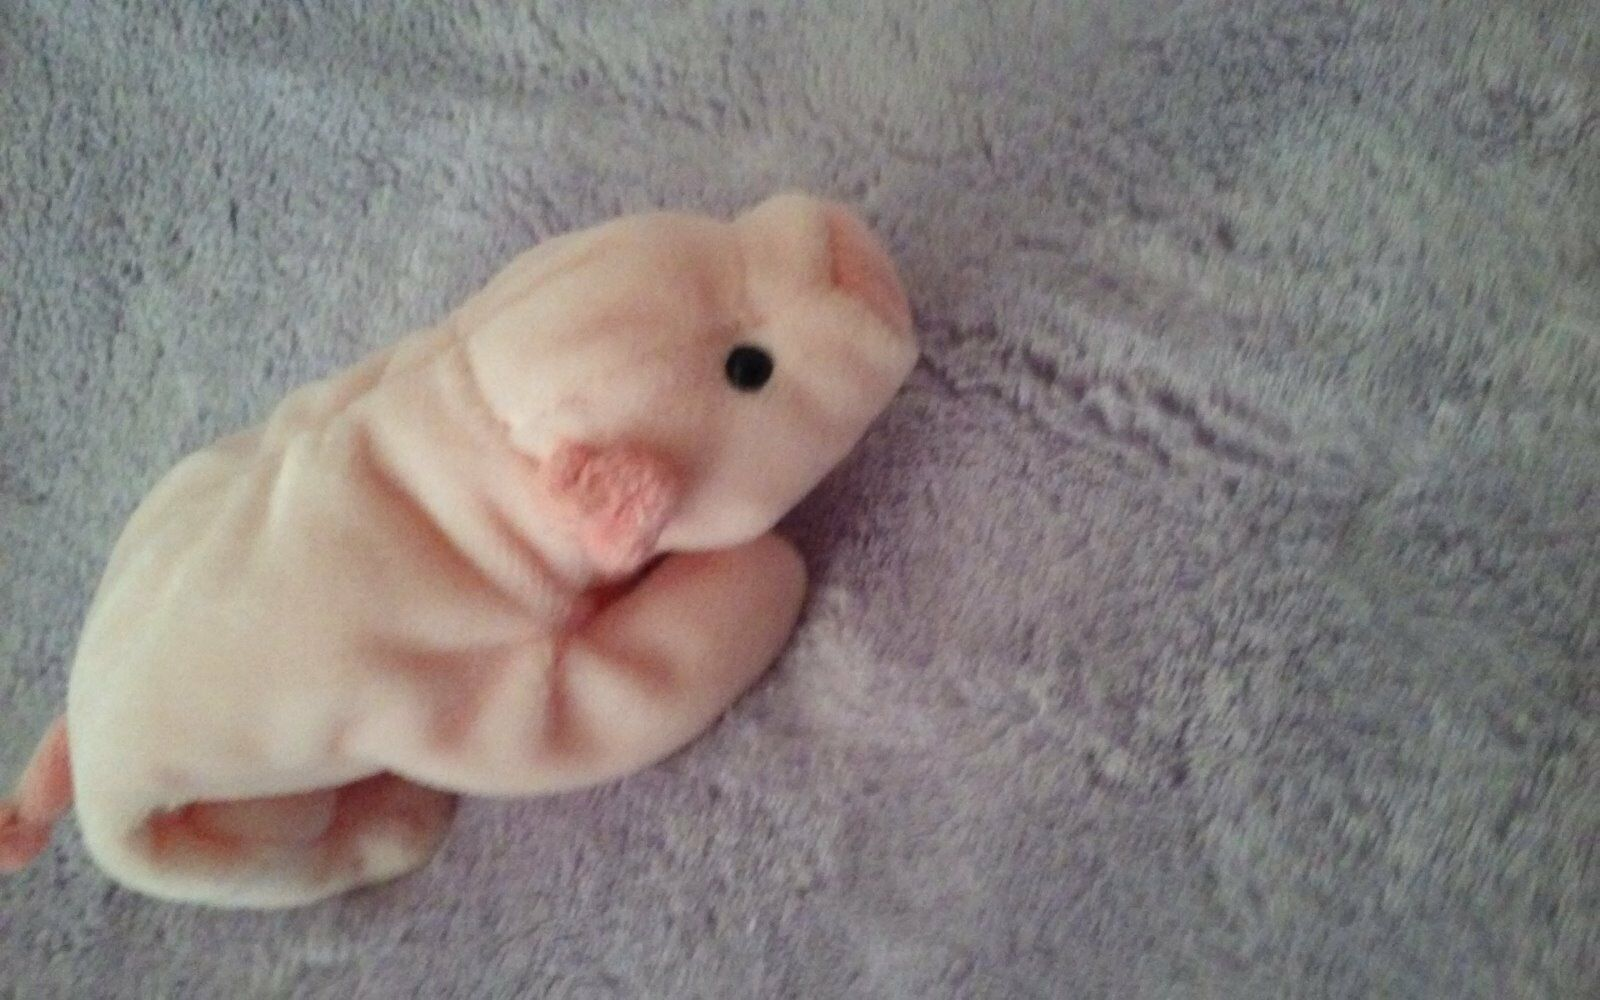 Squealer the Pig ORIGINAL Ty Beanie Baby 1993 PVC pellets   Numerical DOB